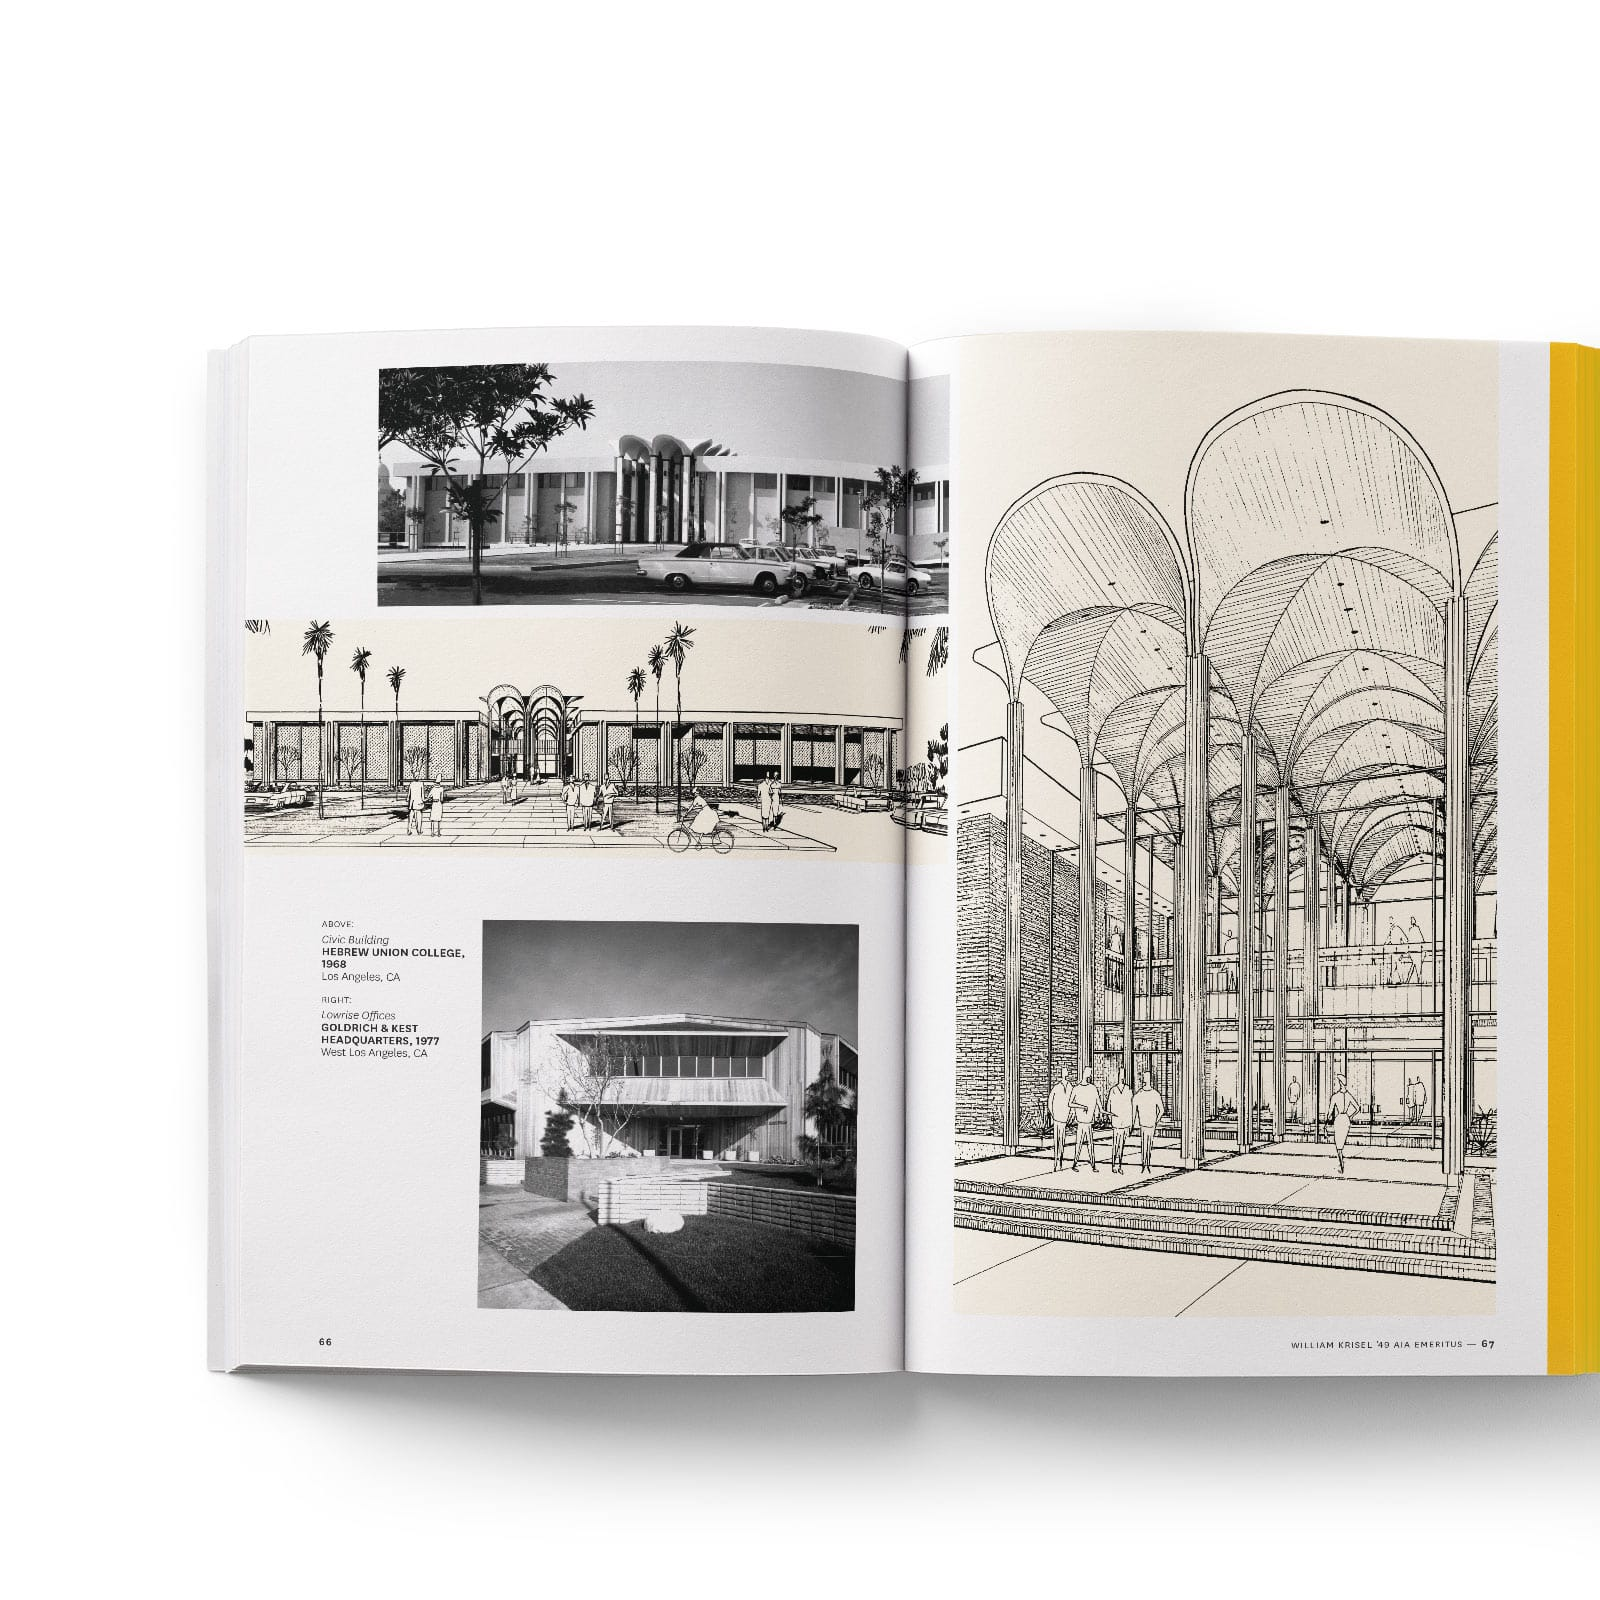 Book spread featuring black and white ink drawings of architecture